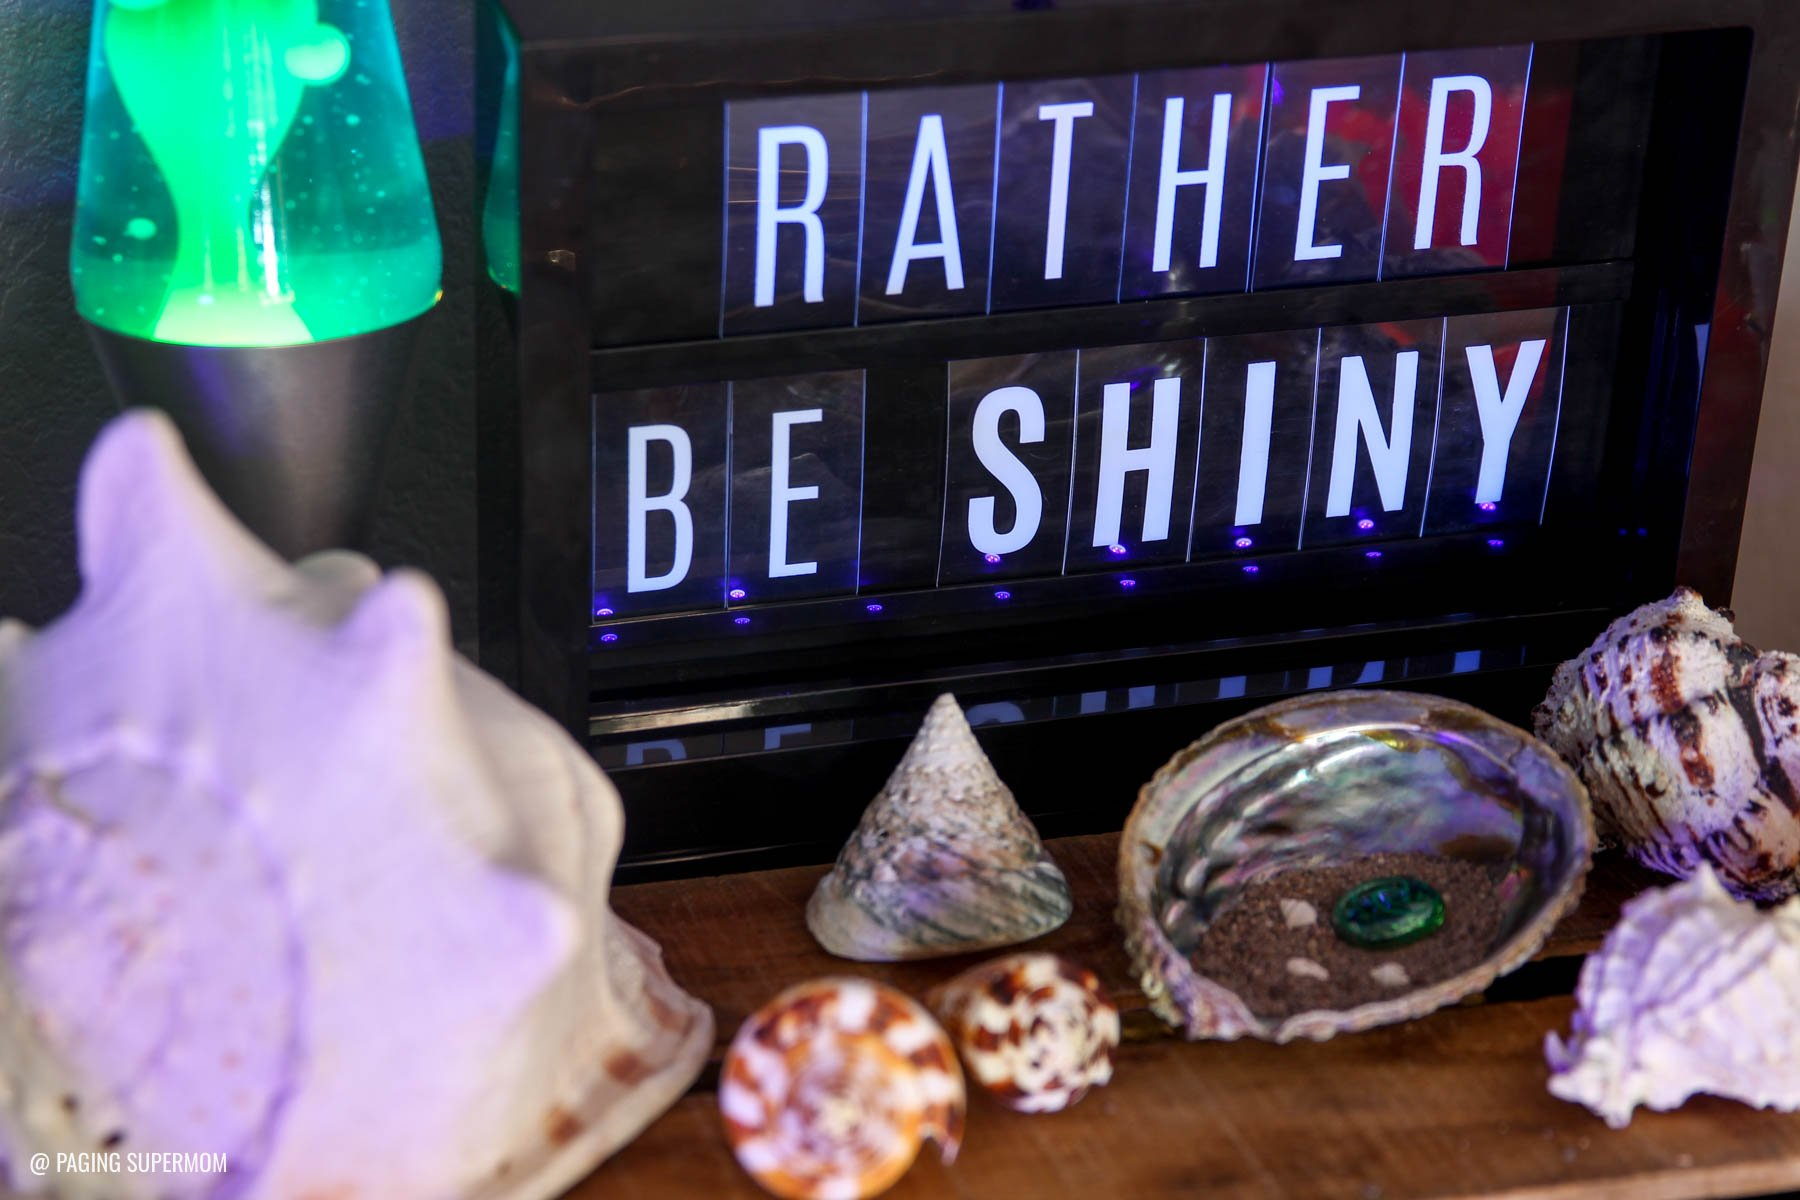 Rather Be Shiny Party! from Moana's Realm of Monsters. The coolest Blacklight Party ideas via @PagingSupermom